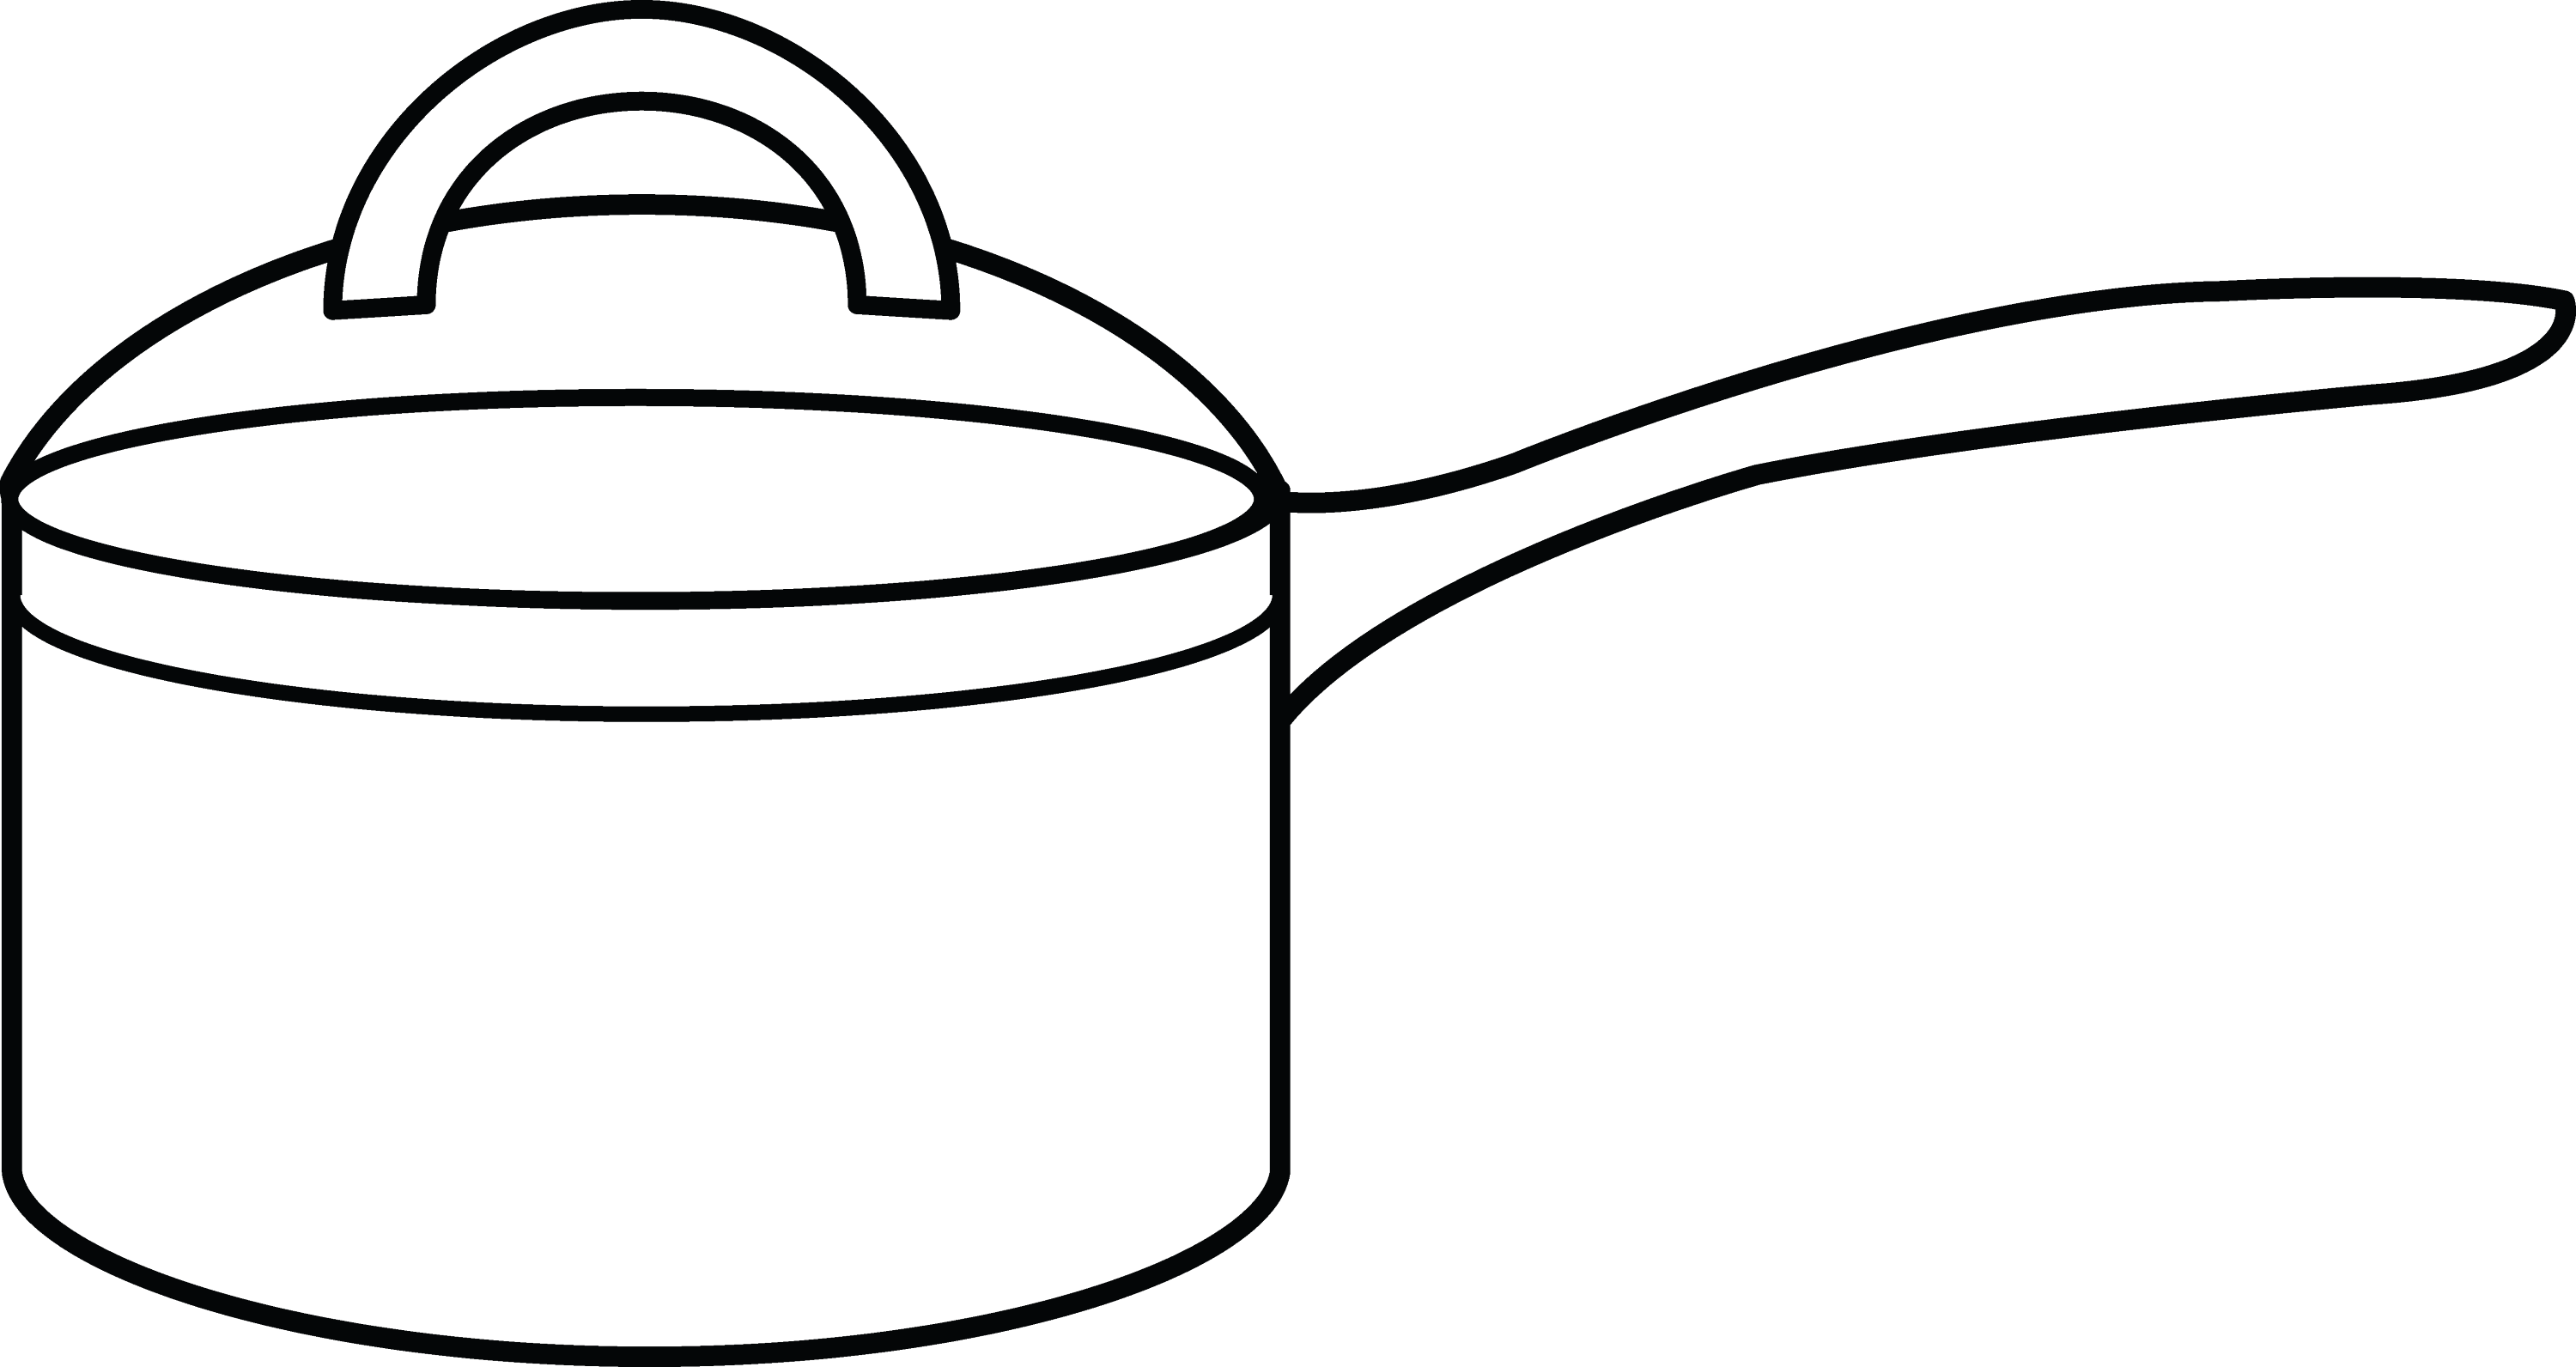 pots coloring pages | Cooking Pot Coloring Page - Free Clip Art